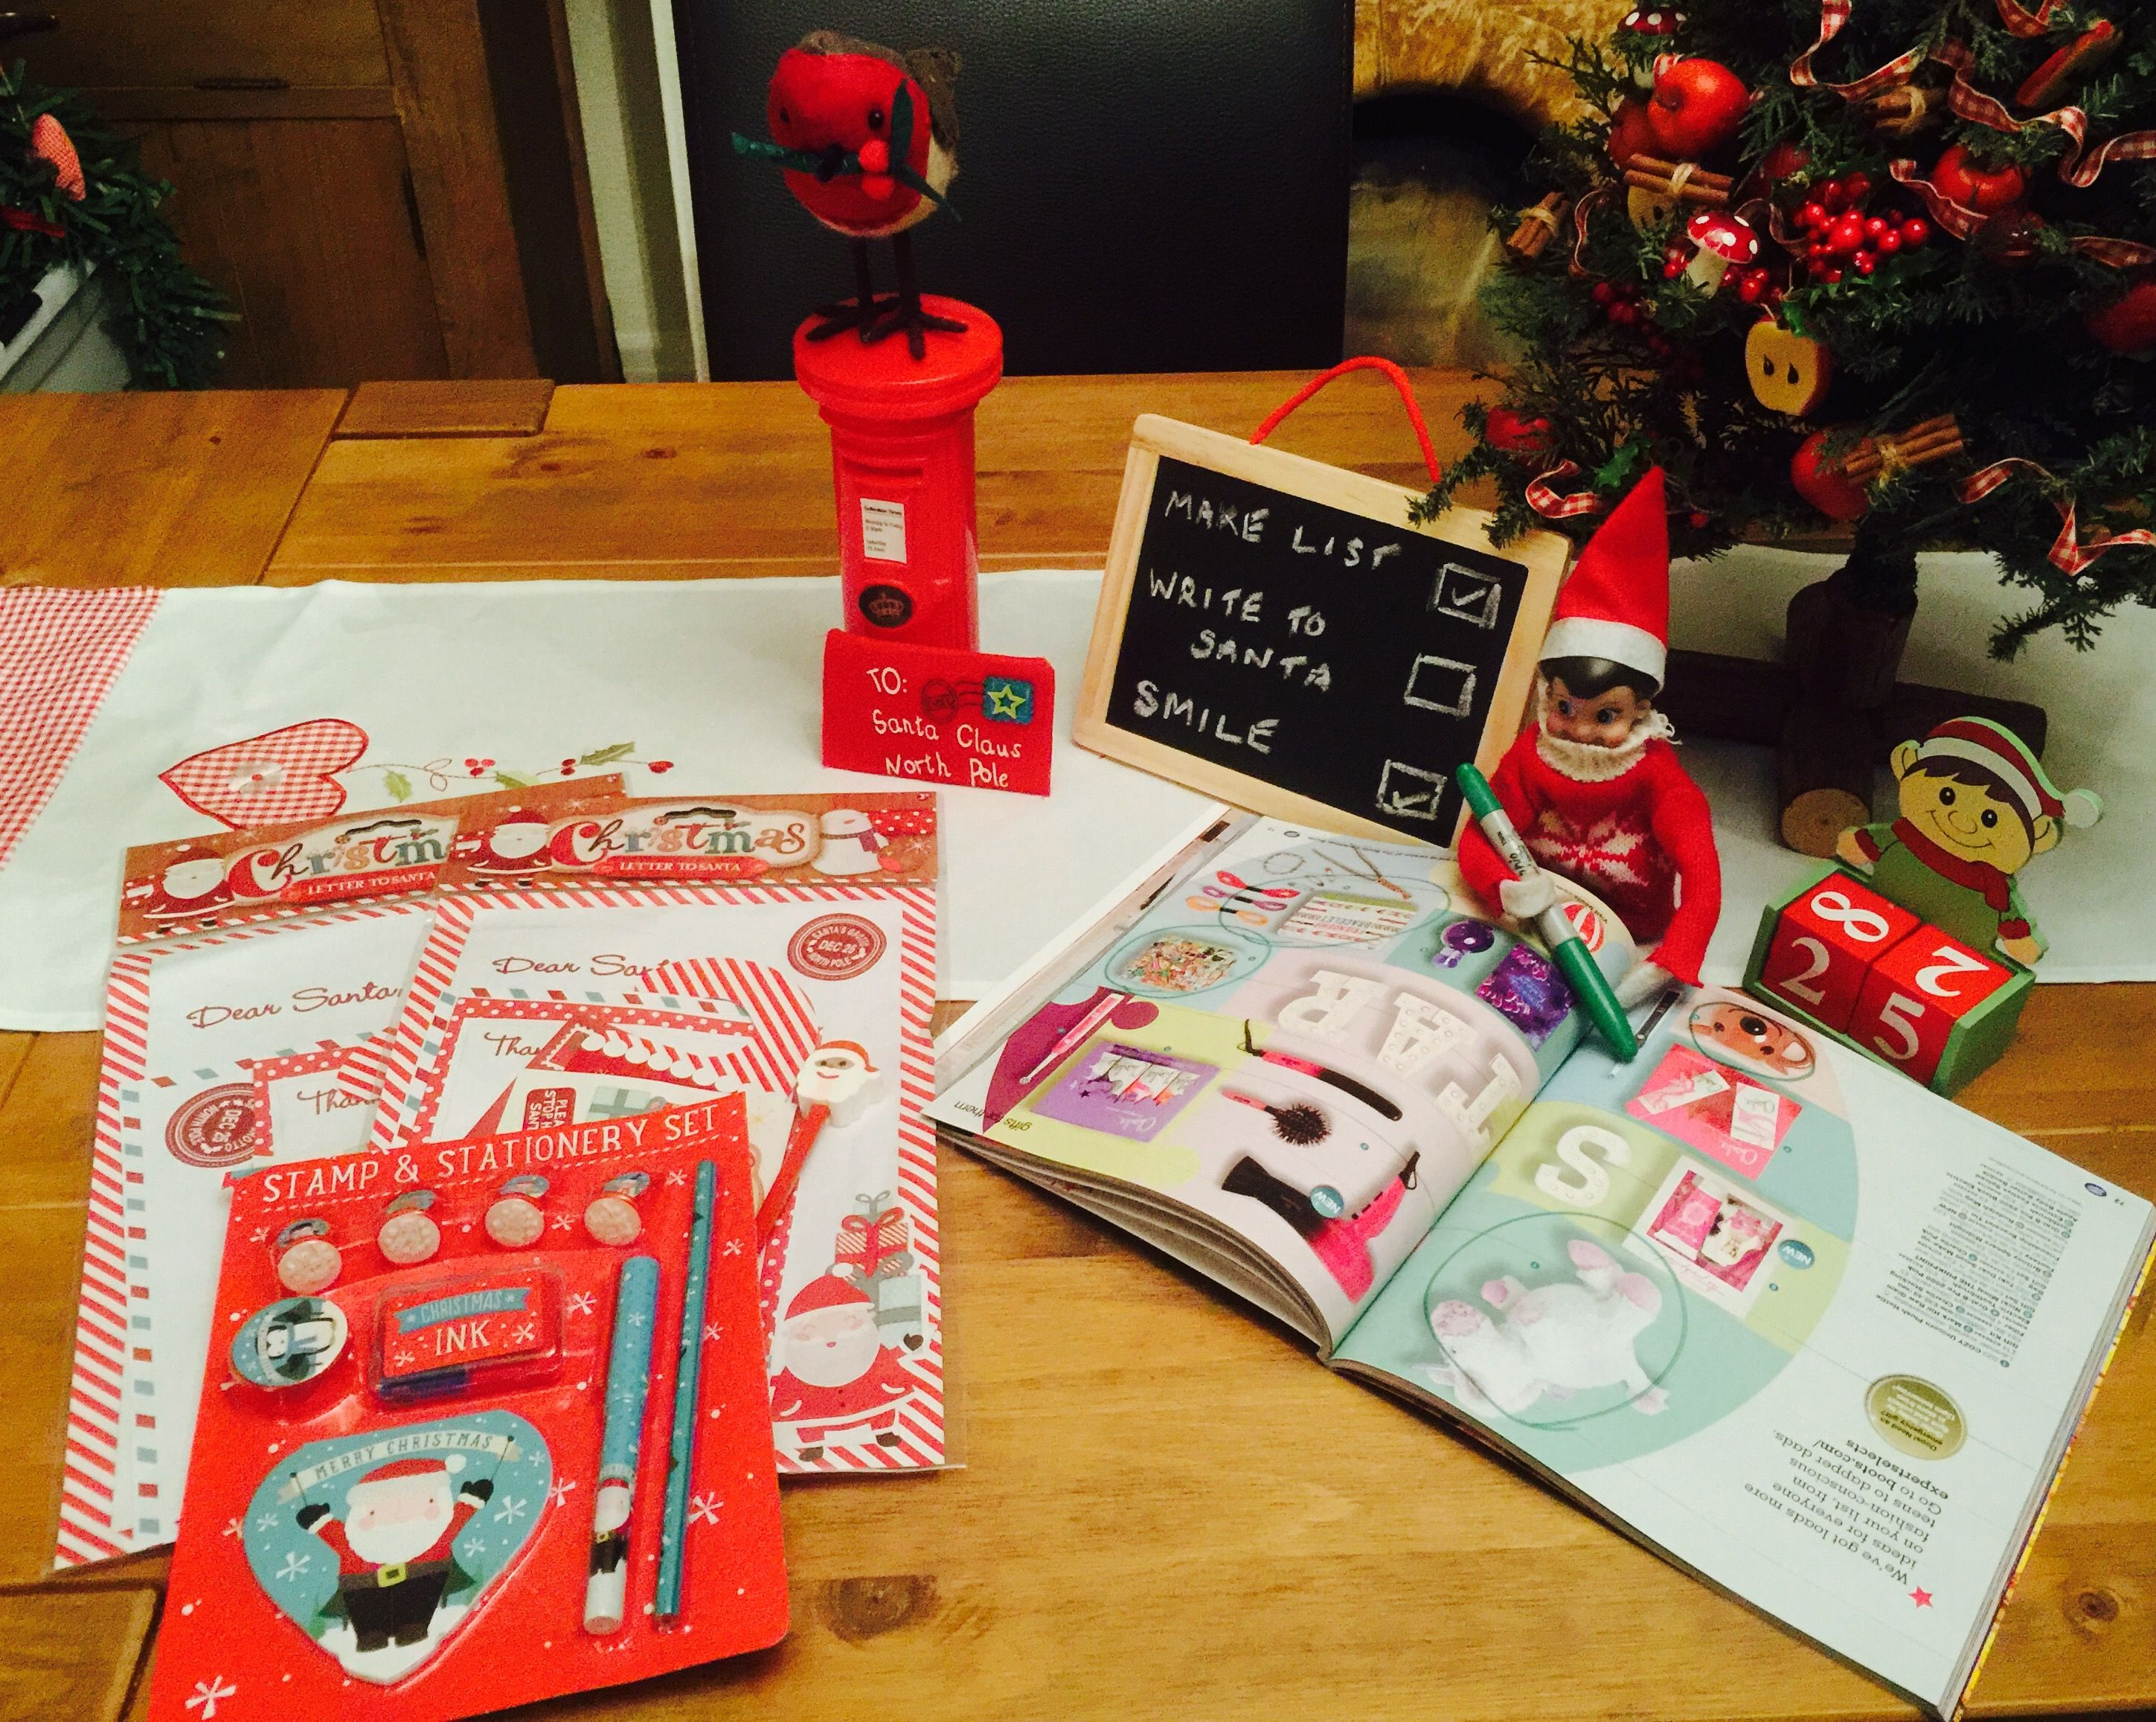 Day 2. Circling catalogues and leaving stationary for letters to Santa.